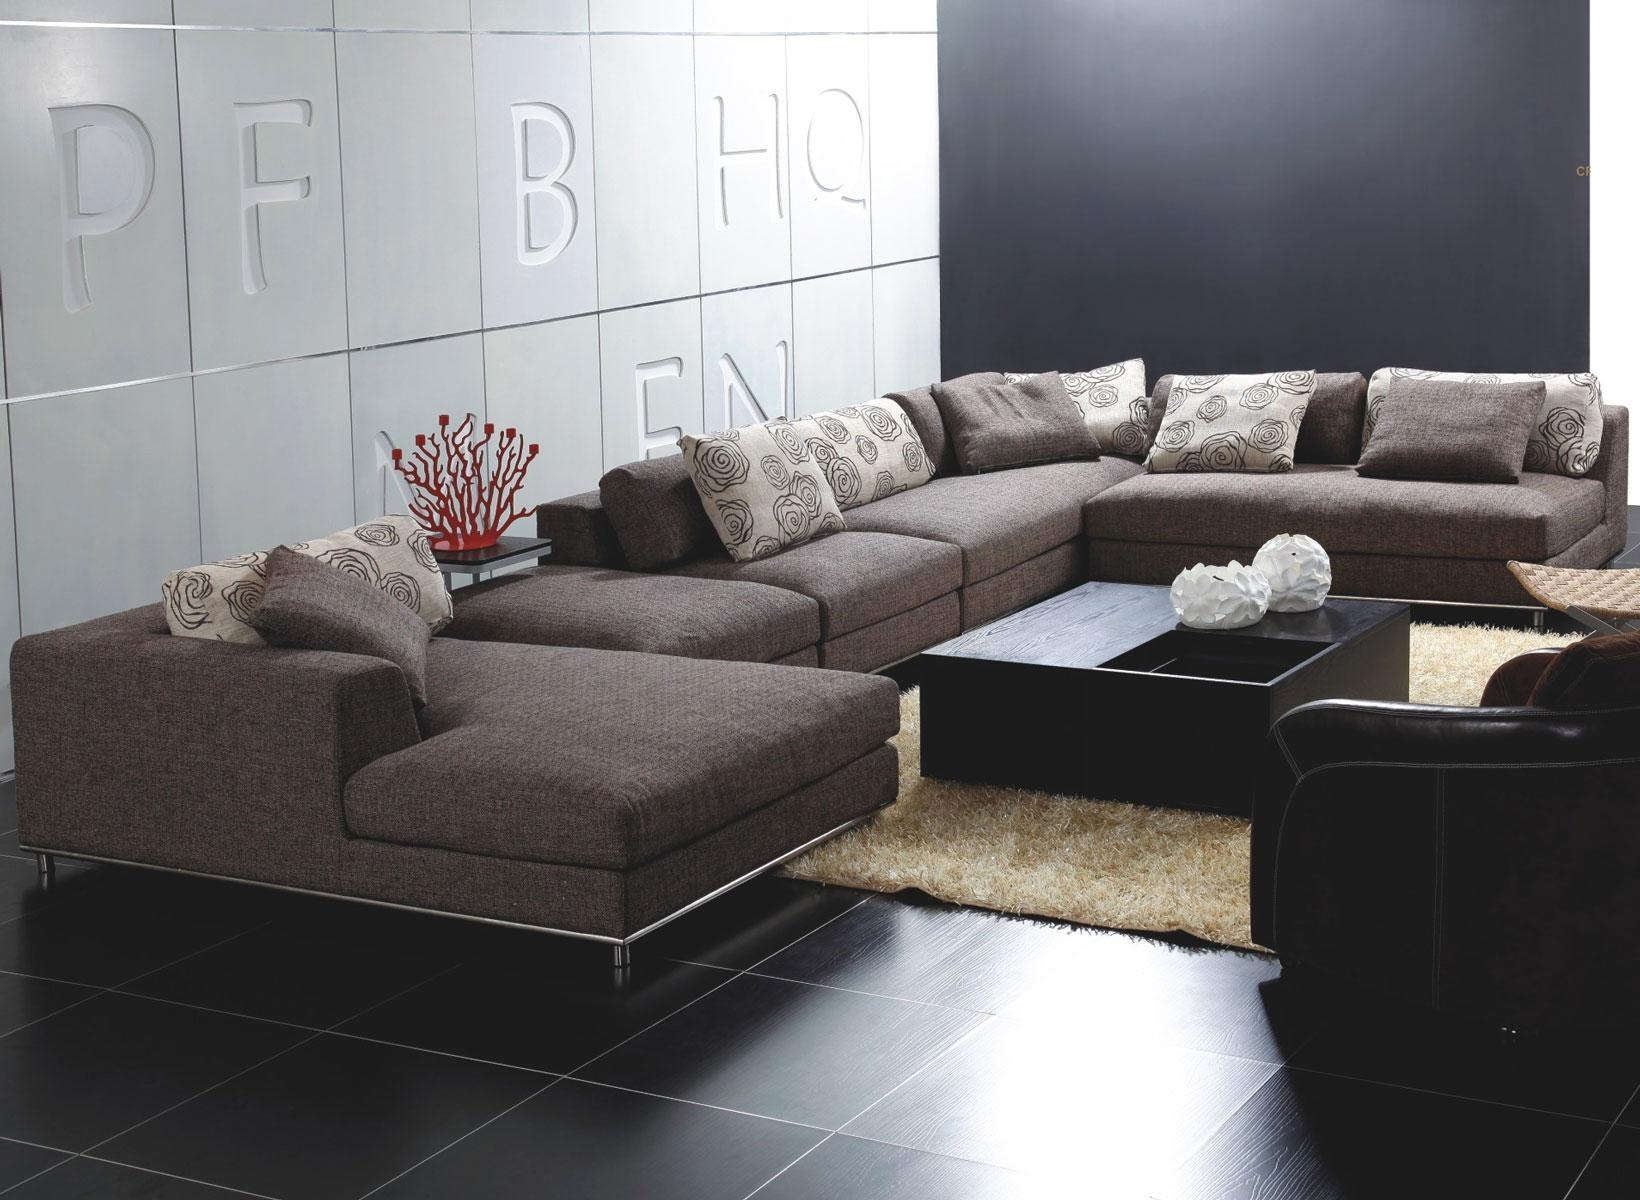 Used Sectional Sofas - Home Design Ideas And Pictures inside Used Sectional Sofas (Image 8 of 10)